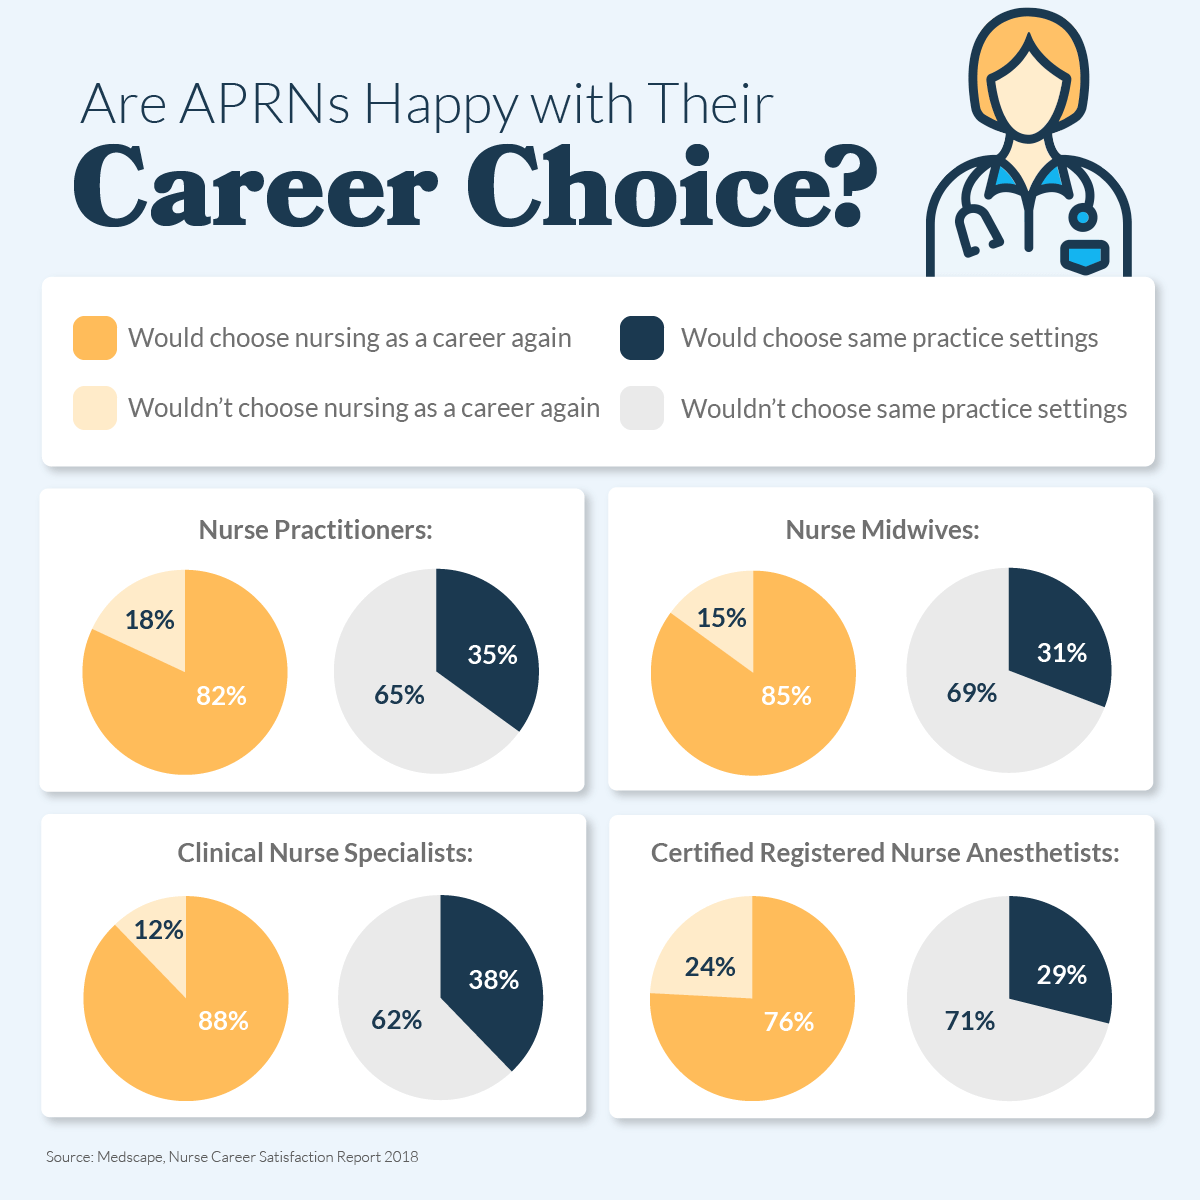 Are APRNs Happy with Their Career Choice?